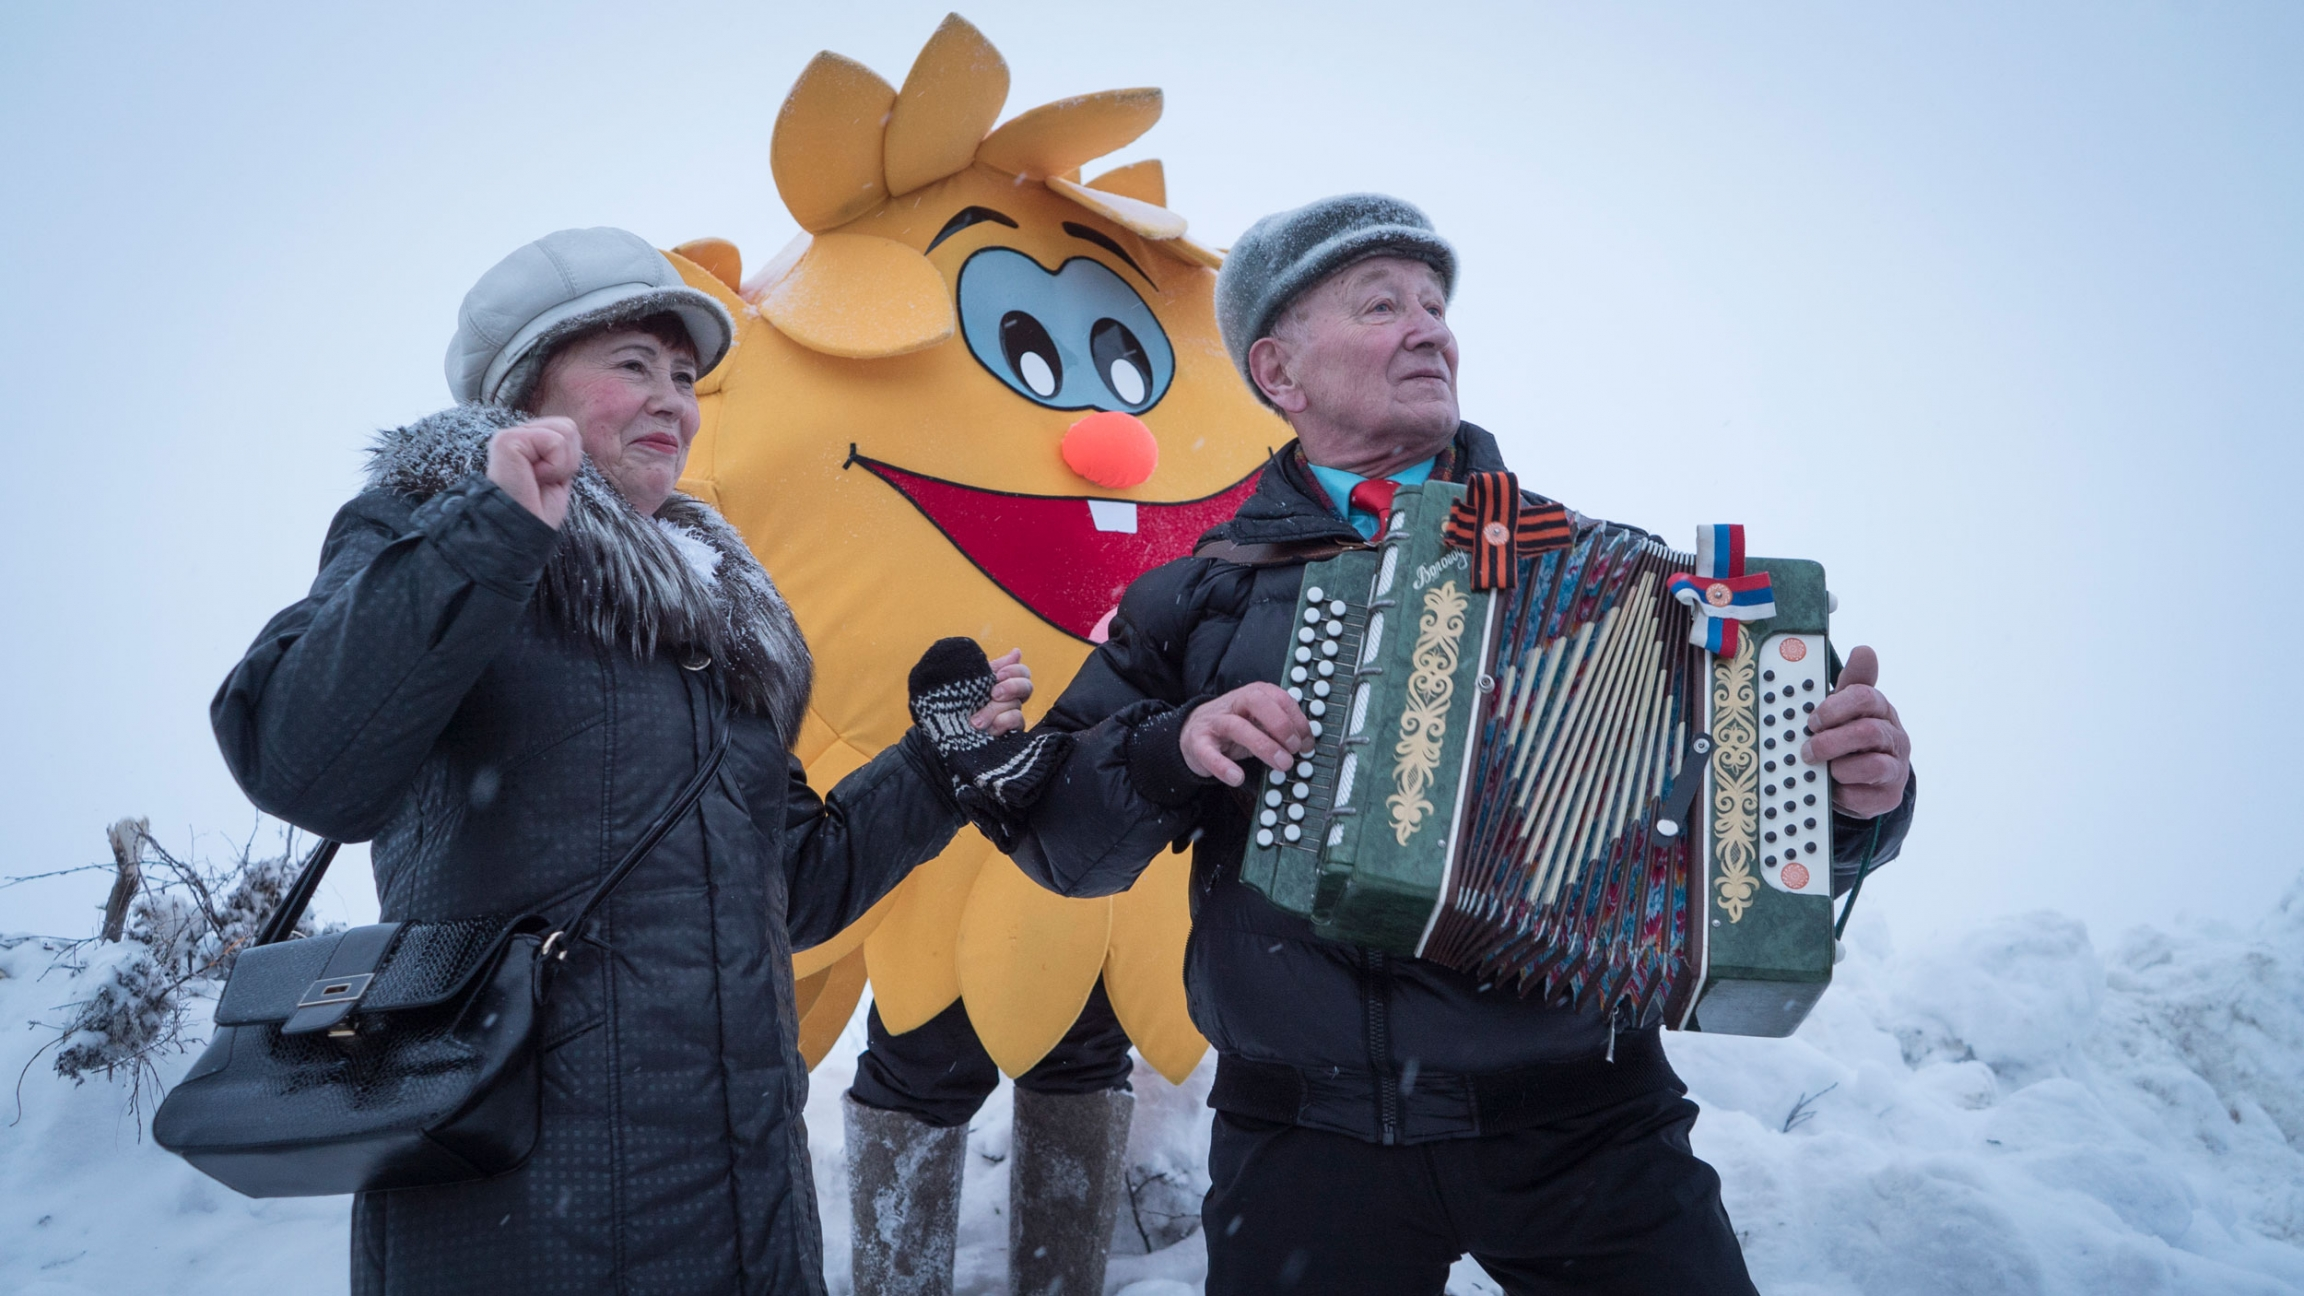 An older man is shown playing an accordion with a person dressed up in a sun costume stands behind him.